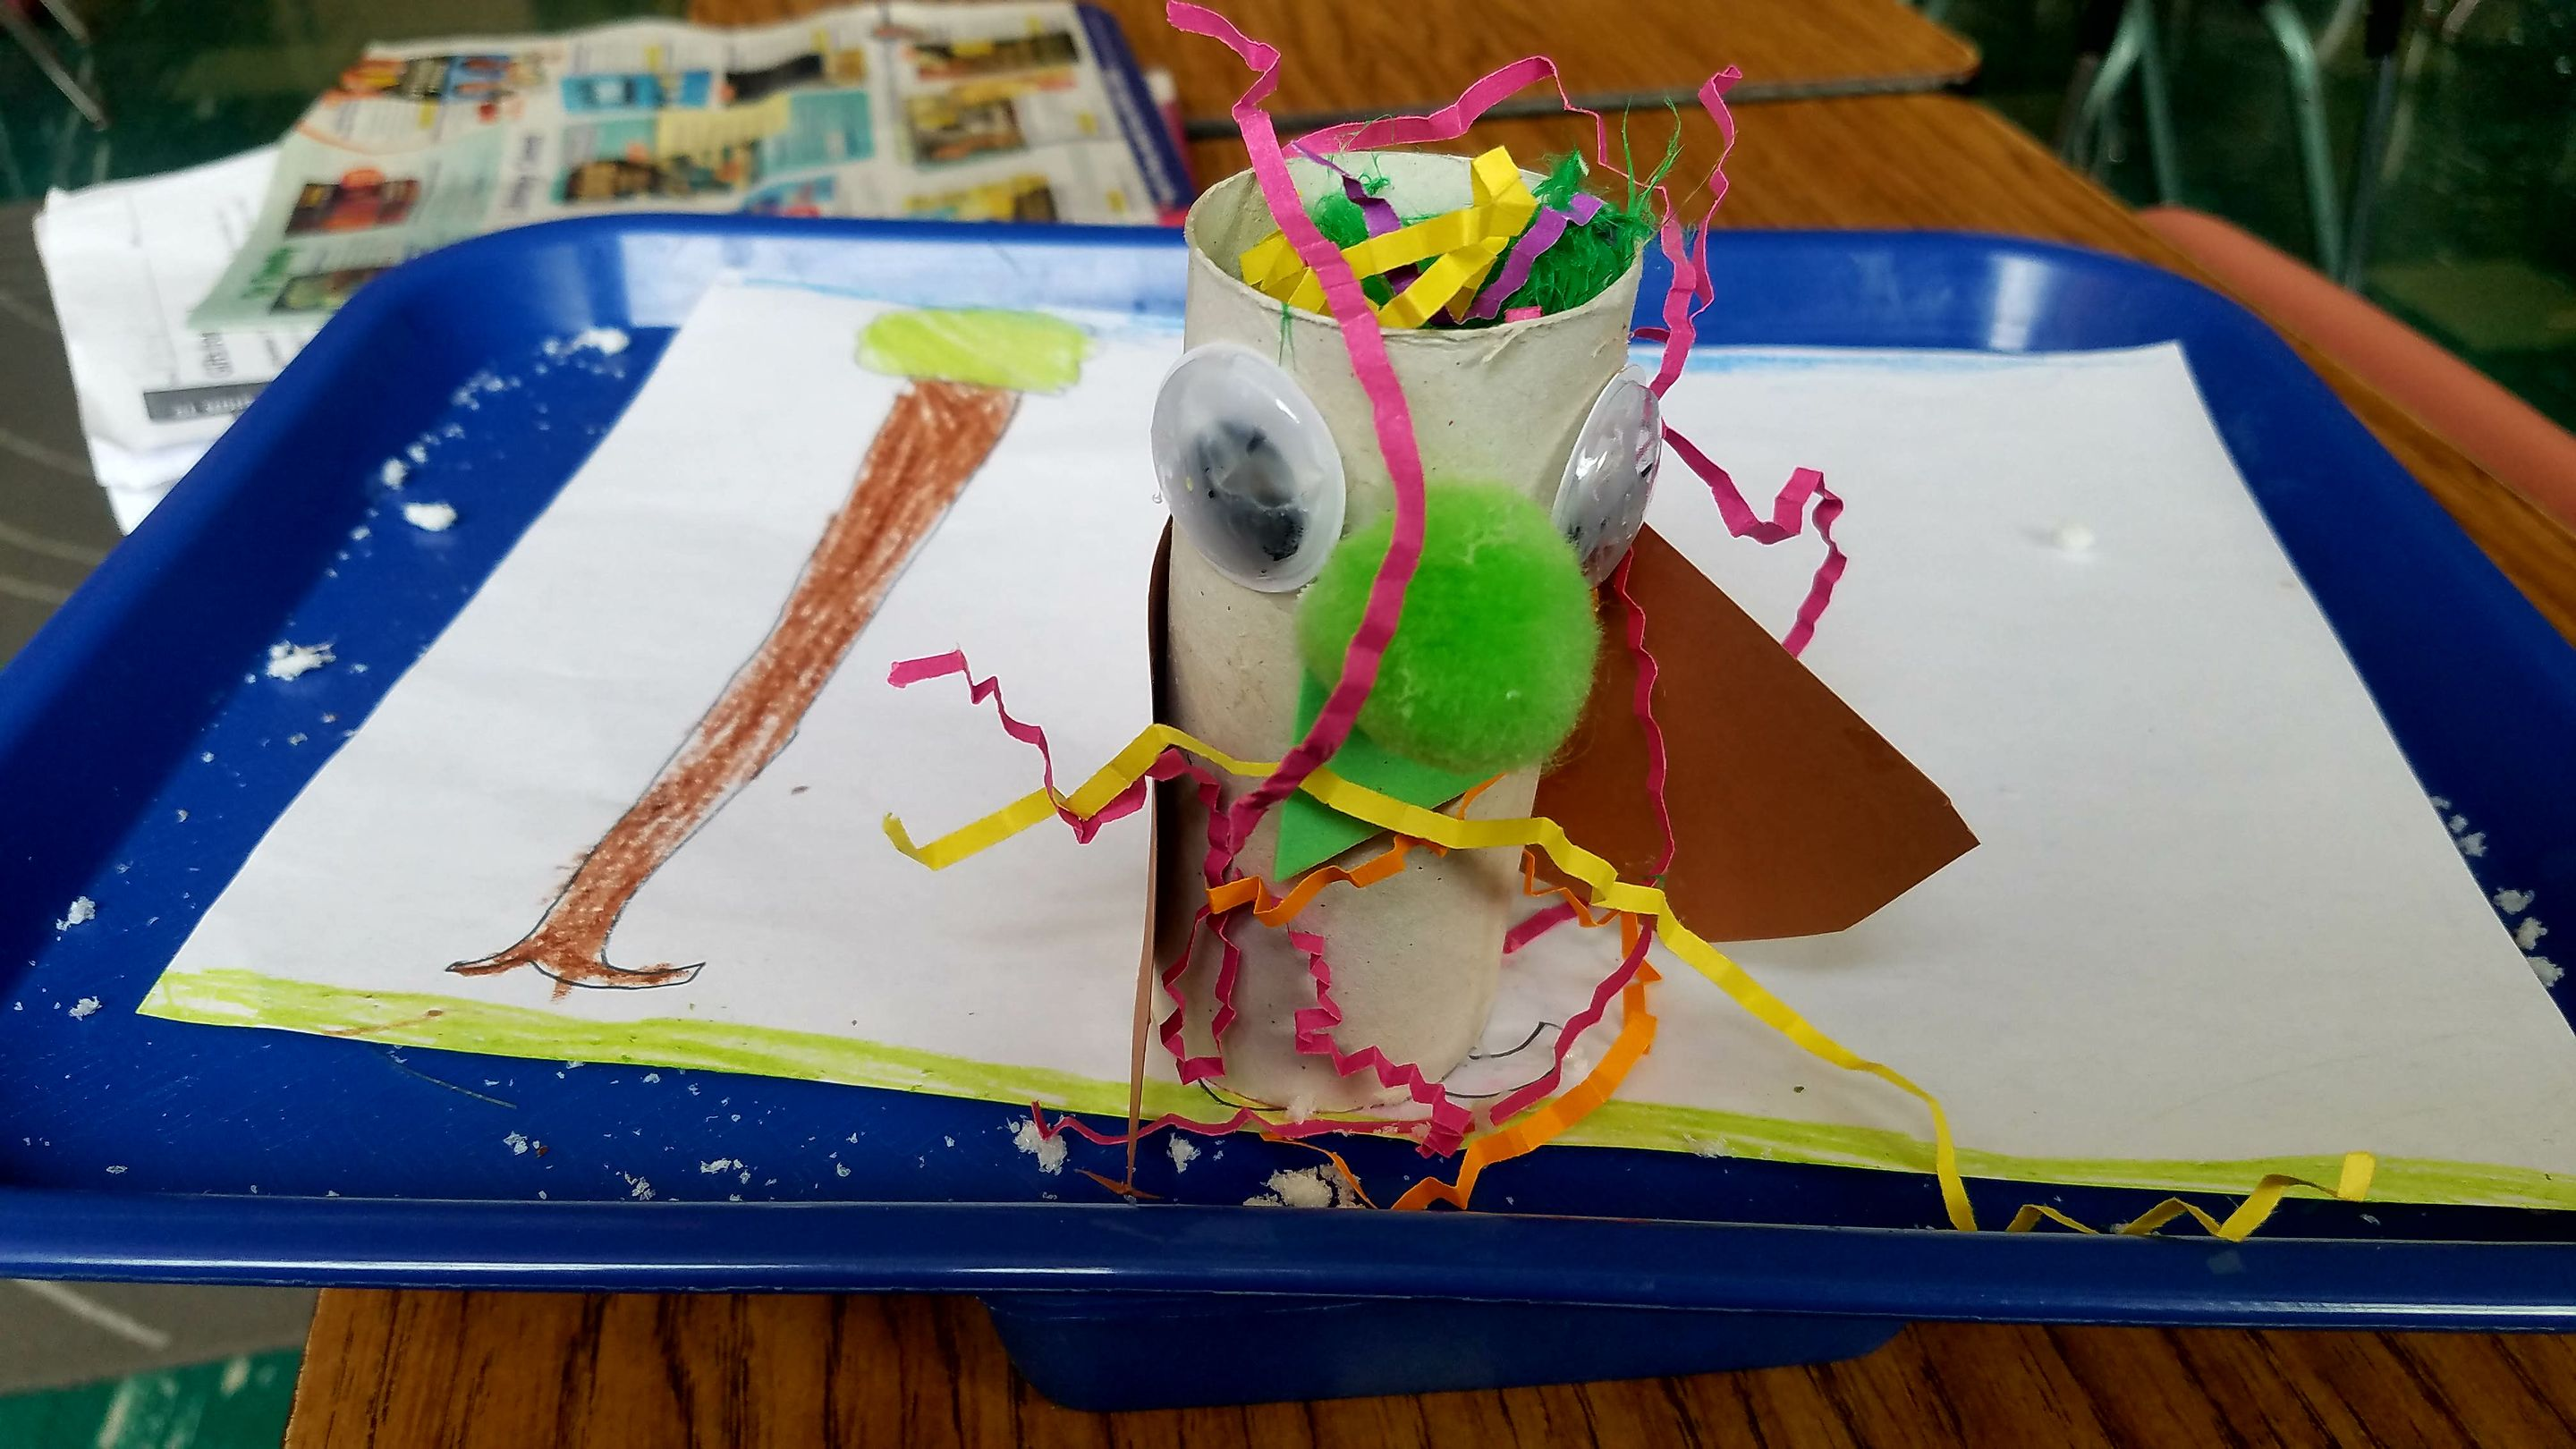 An animal invented by one of the author's third graders